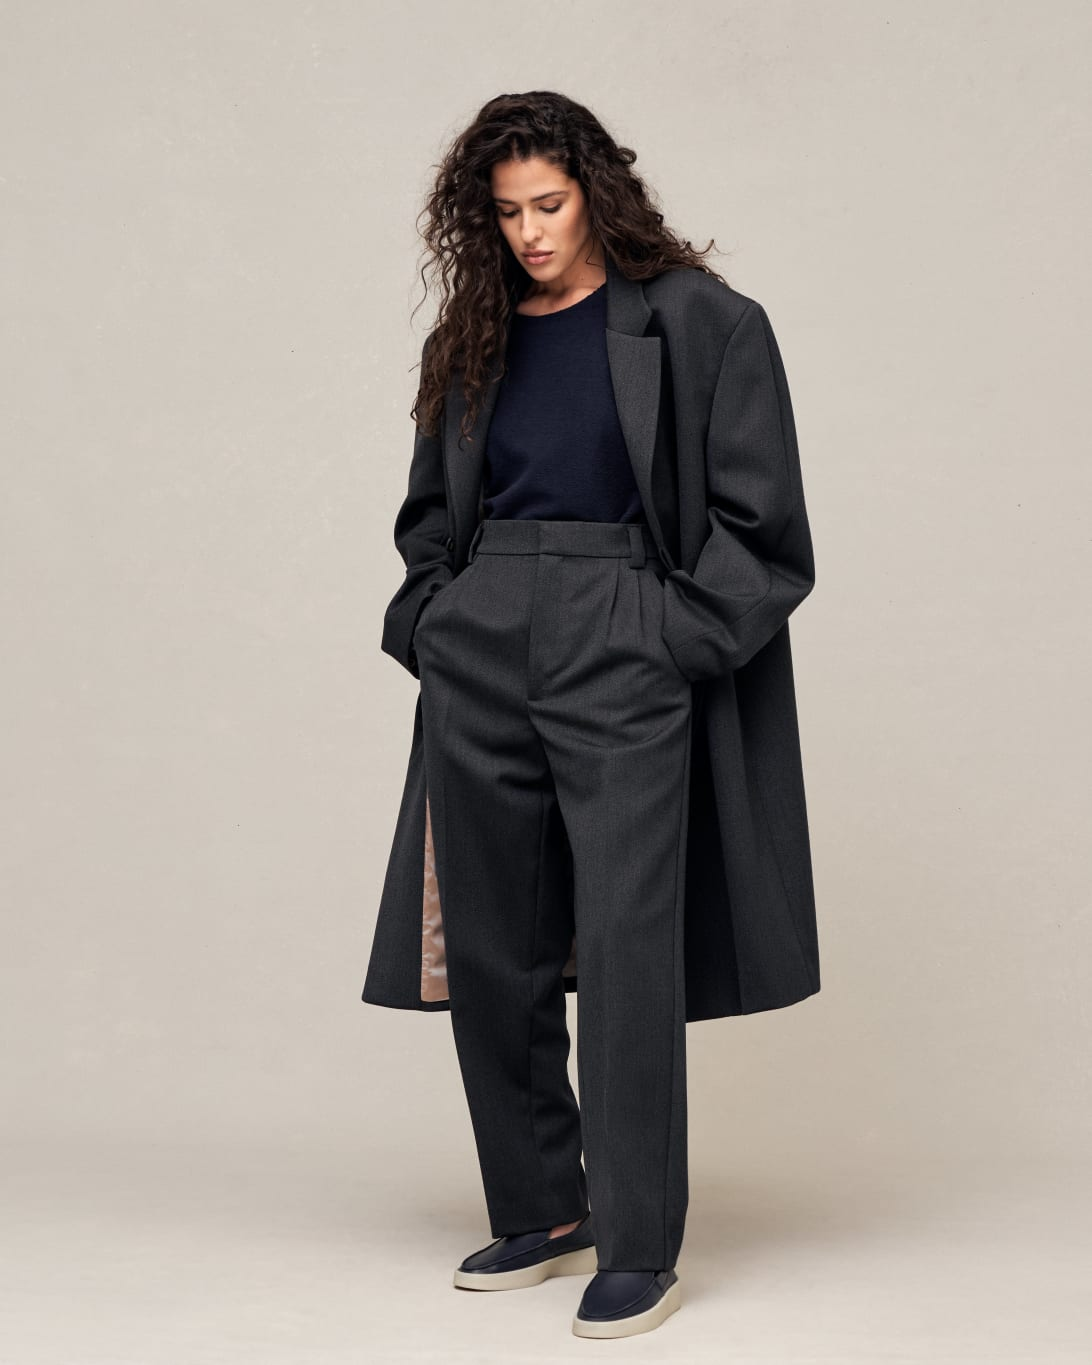 Seventh Collection | Fall/Winter Lookbook Look 25